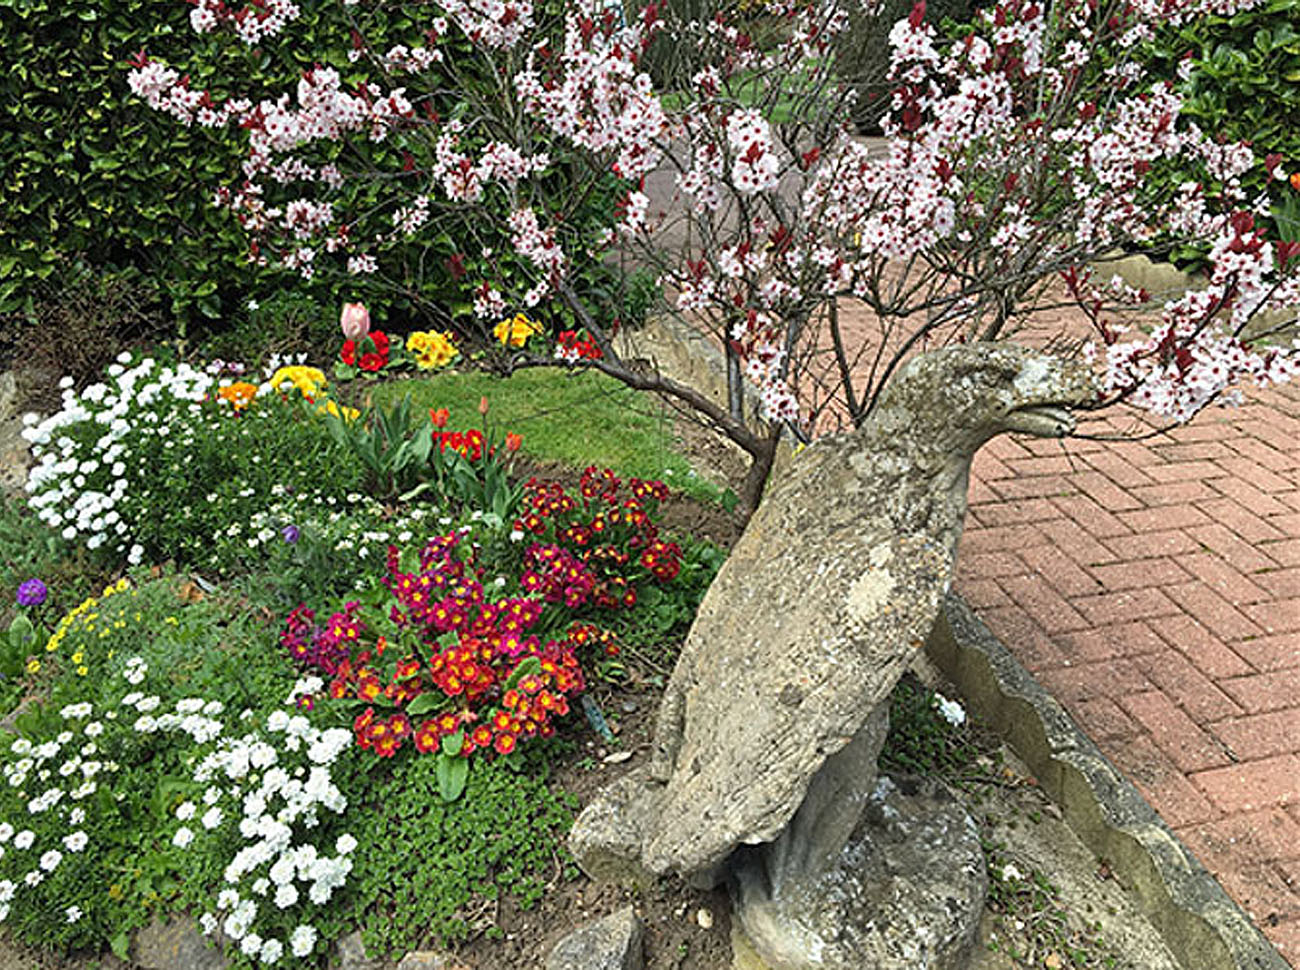 Allwinds Ground Maintenace provide commercial and residential garden services in Buckinghamshire covering Beaconsfield, Chalfont St Peter, Fulmer, Gerrards Cross, High Wycombe, Holmer Green, Little Chalfont